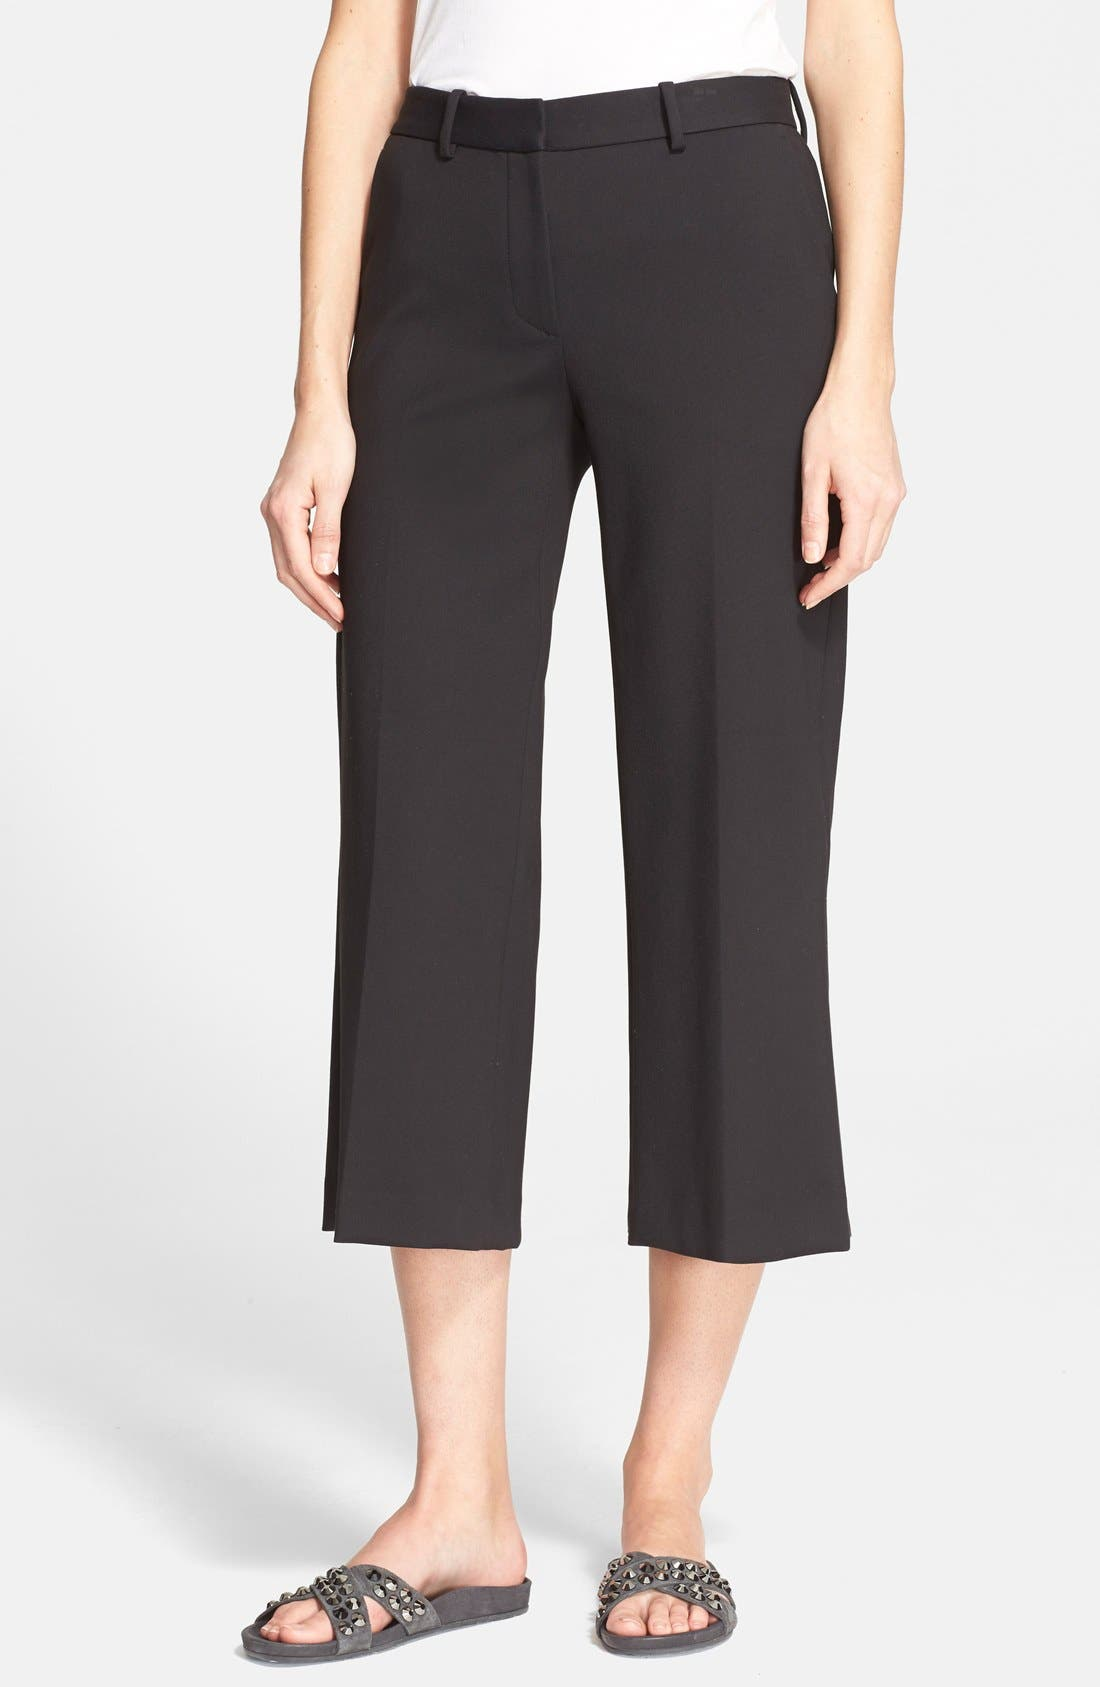 THEORY,                             'Sprinza' Wide Leg Crop Pants,                             Main thumbnail 1, color,                             001